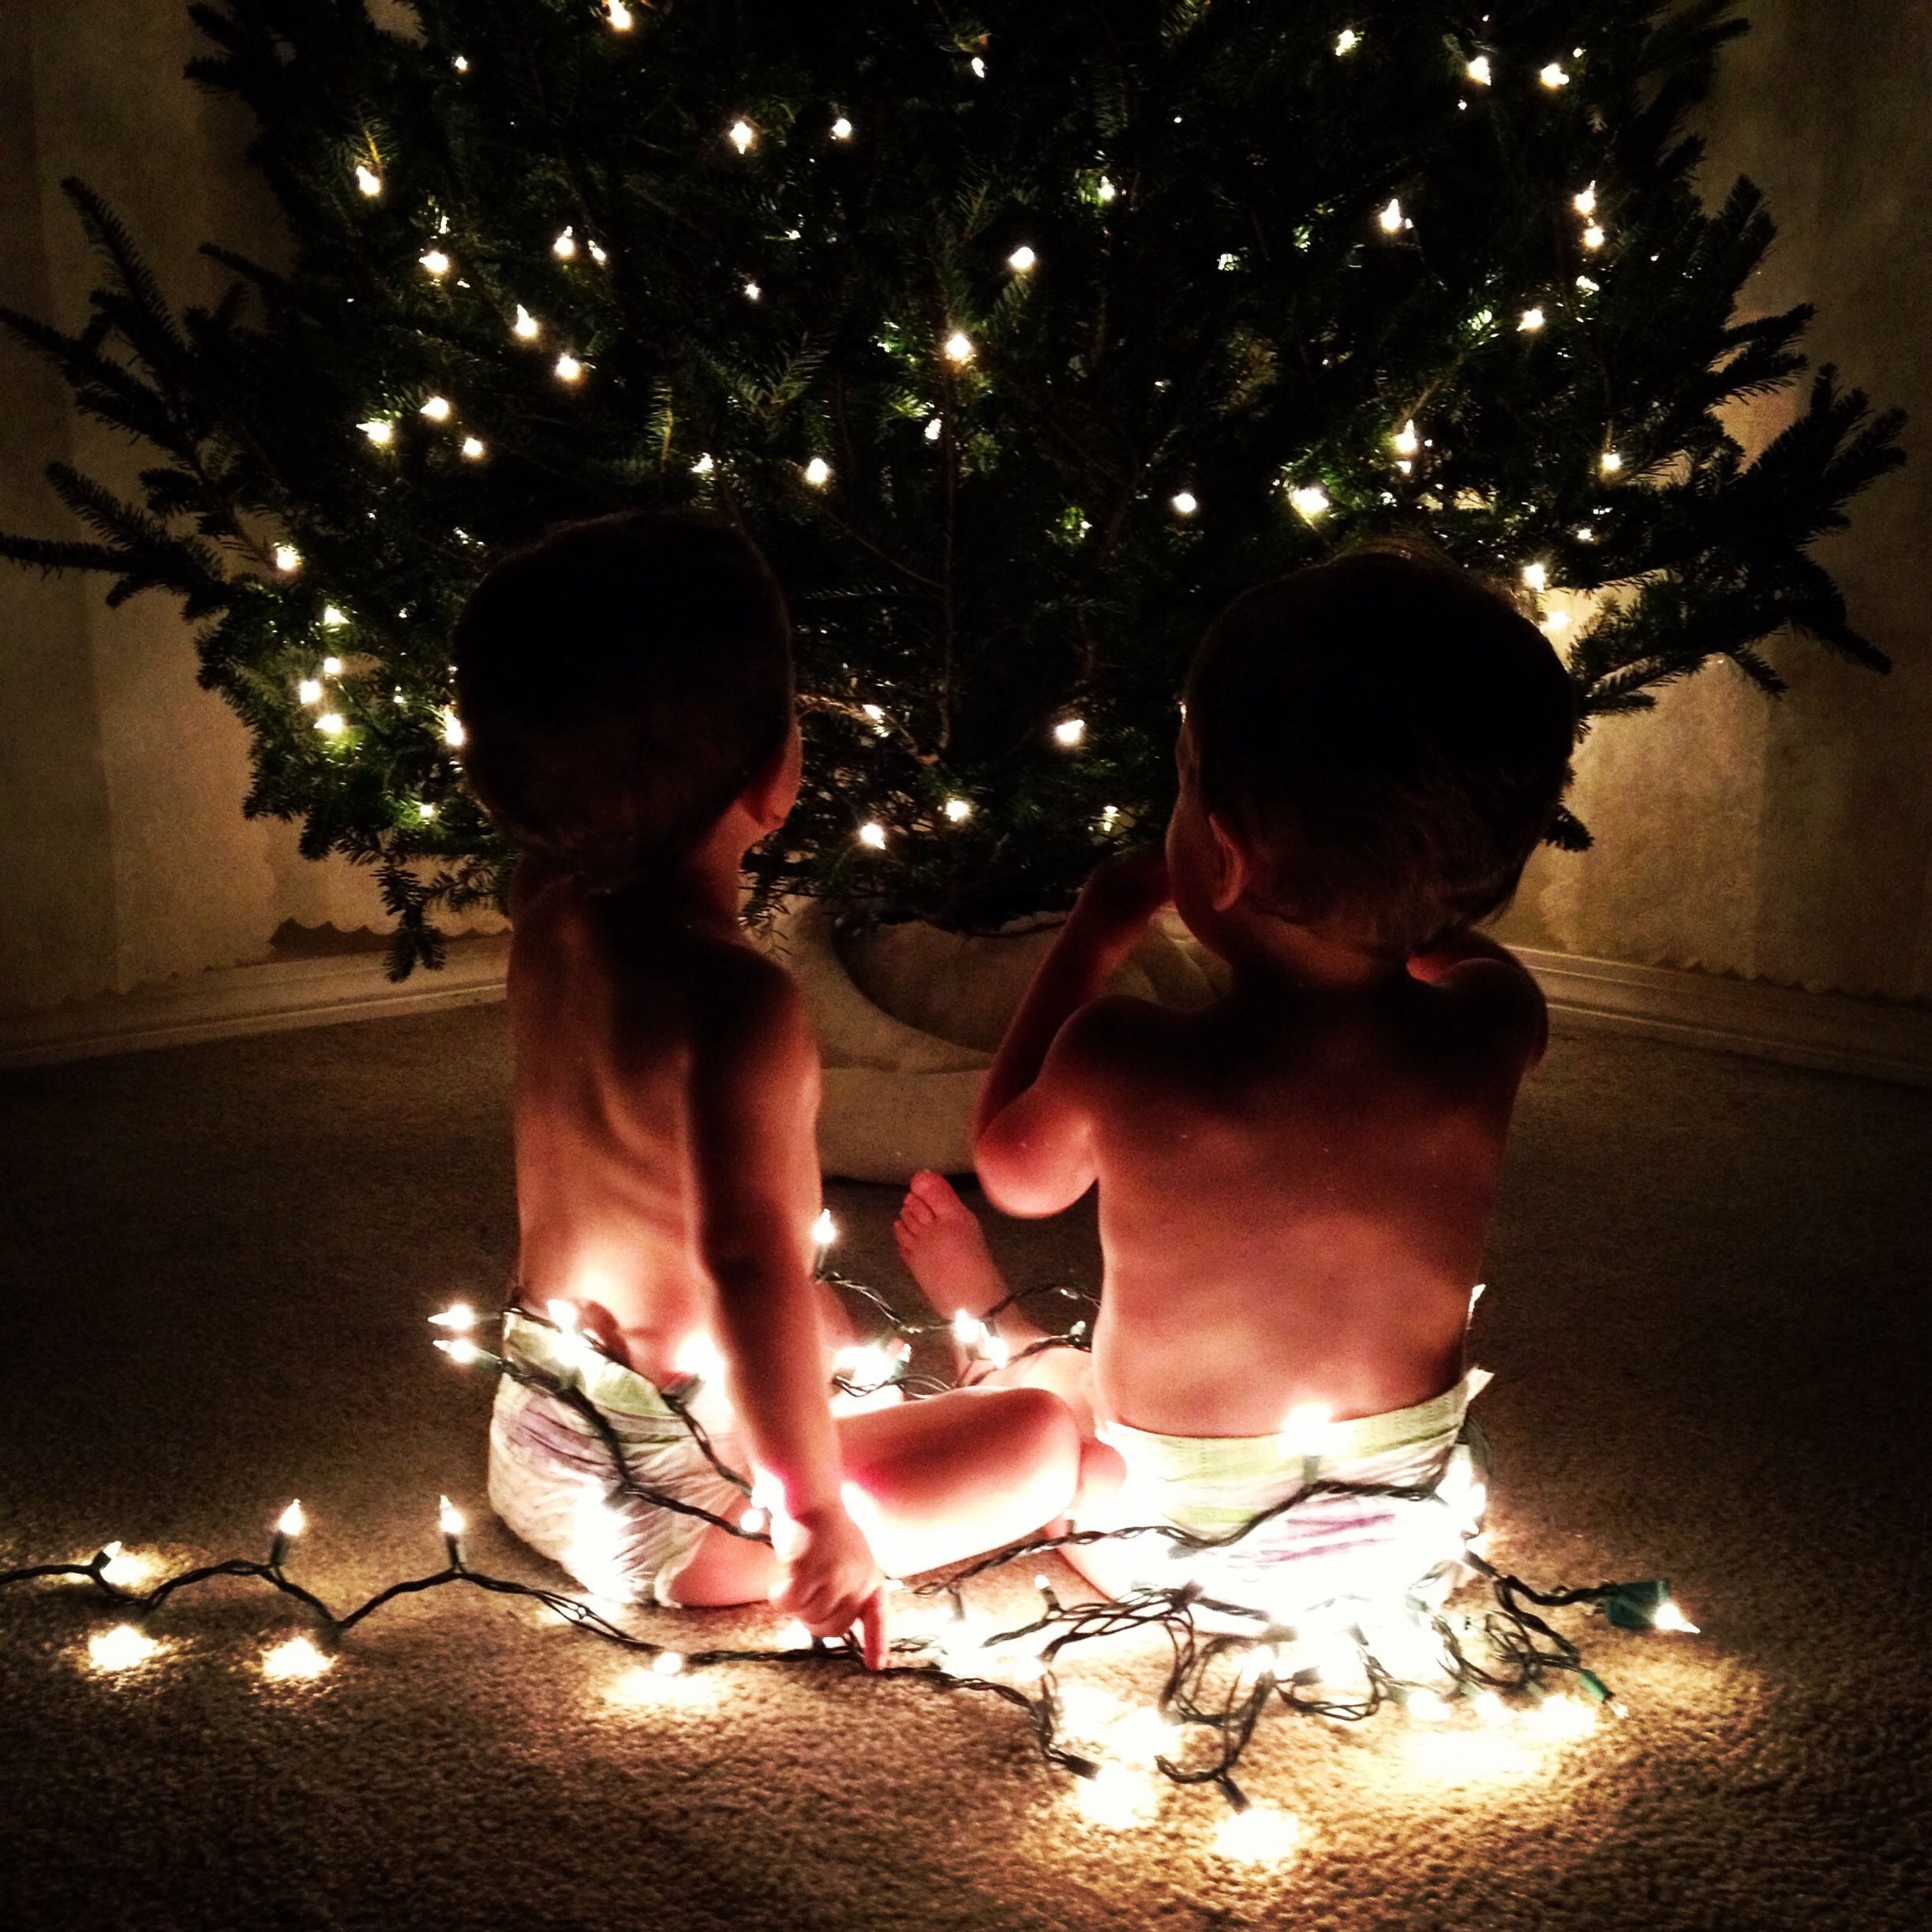 My Twins wrapped in Christmas lights